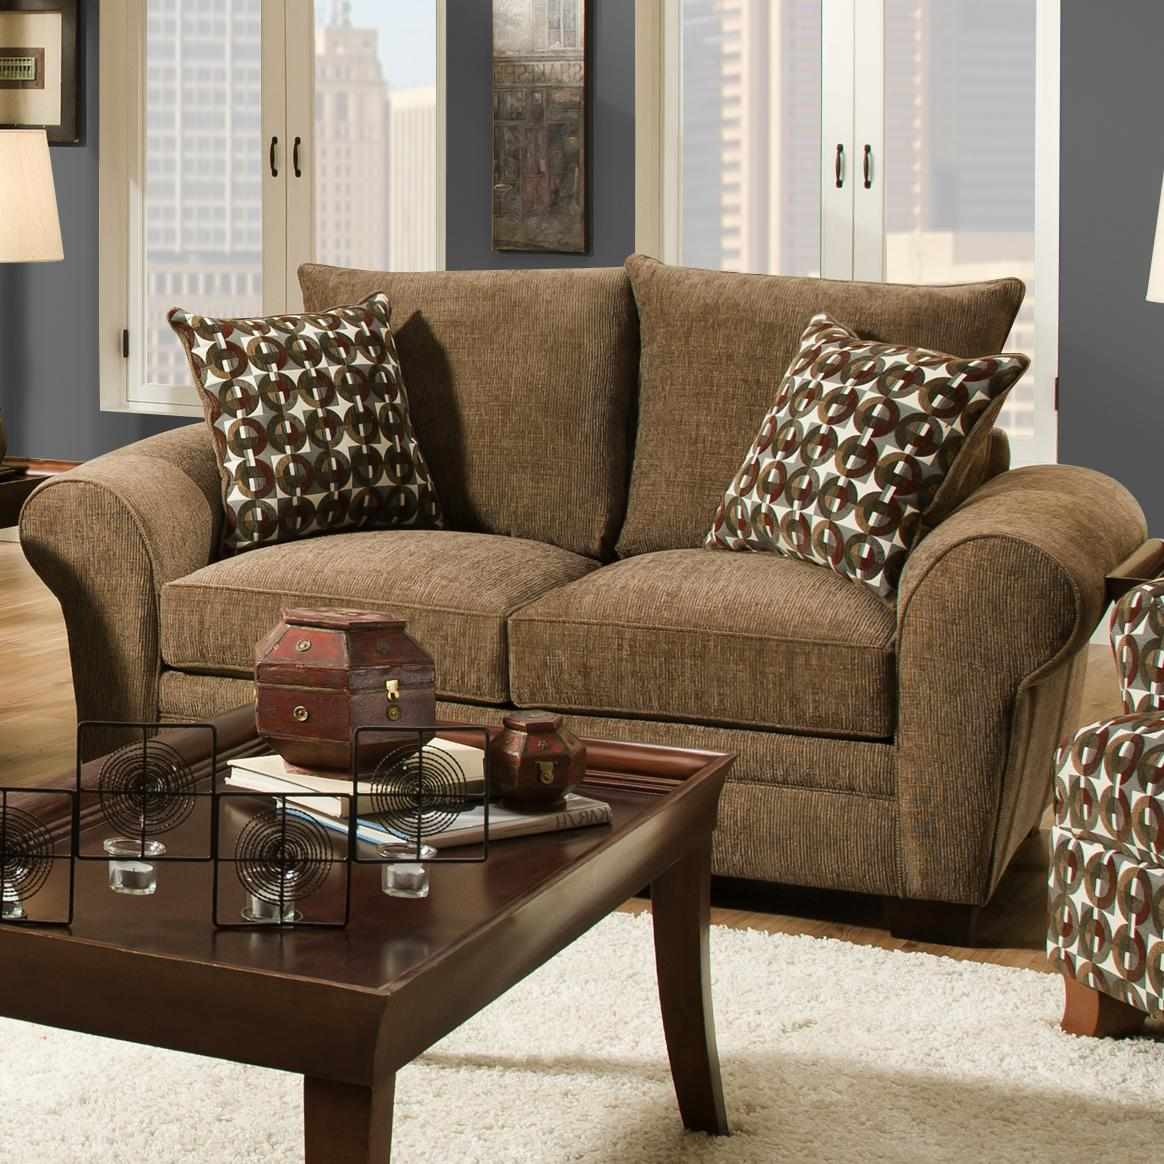 Traditional Styled Loveseat With Comfortable Look For